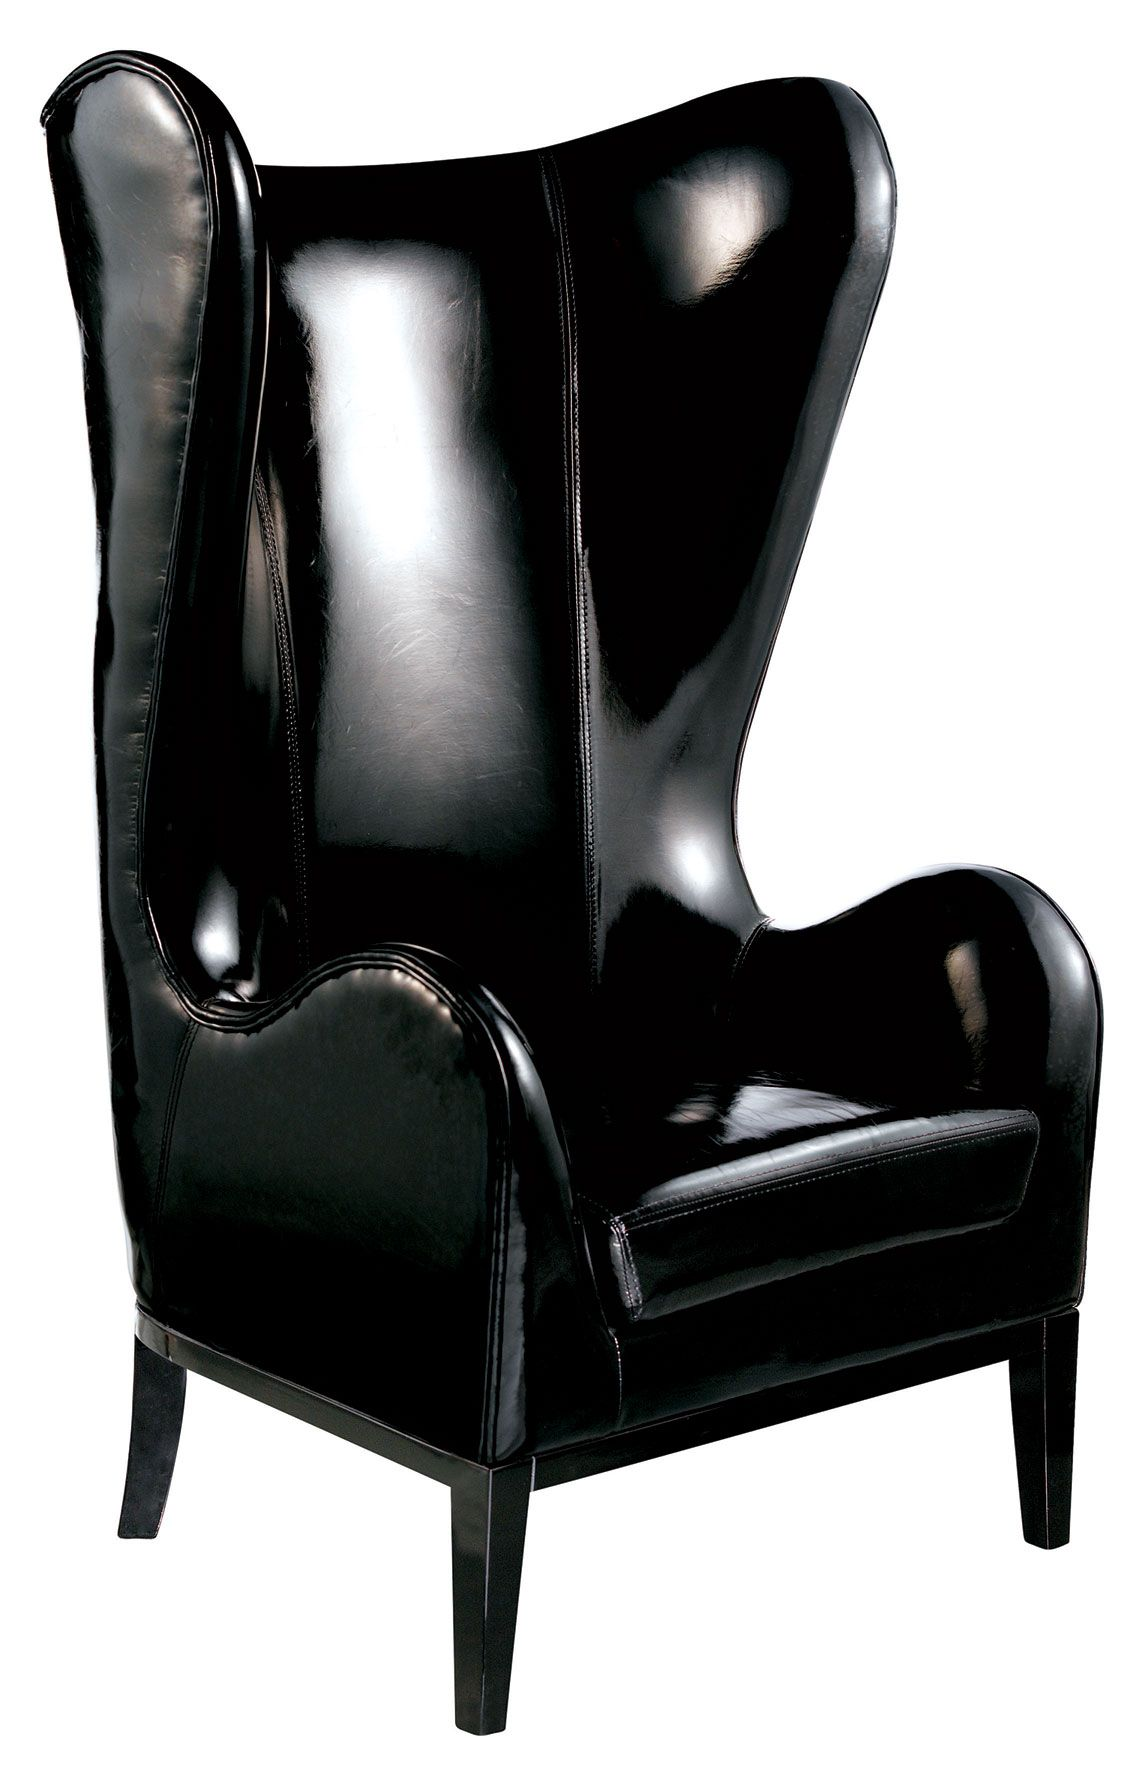 high backed throne chair bedroom lemon classical back smoking in black patent leather